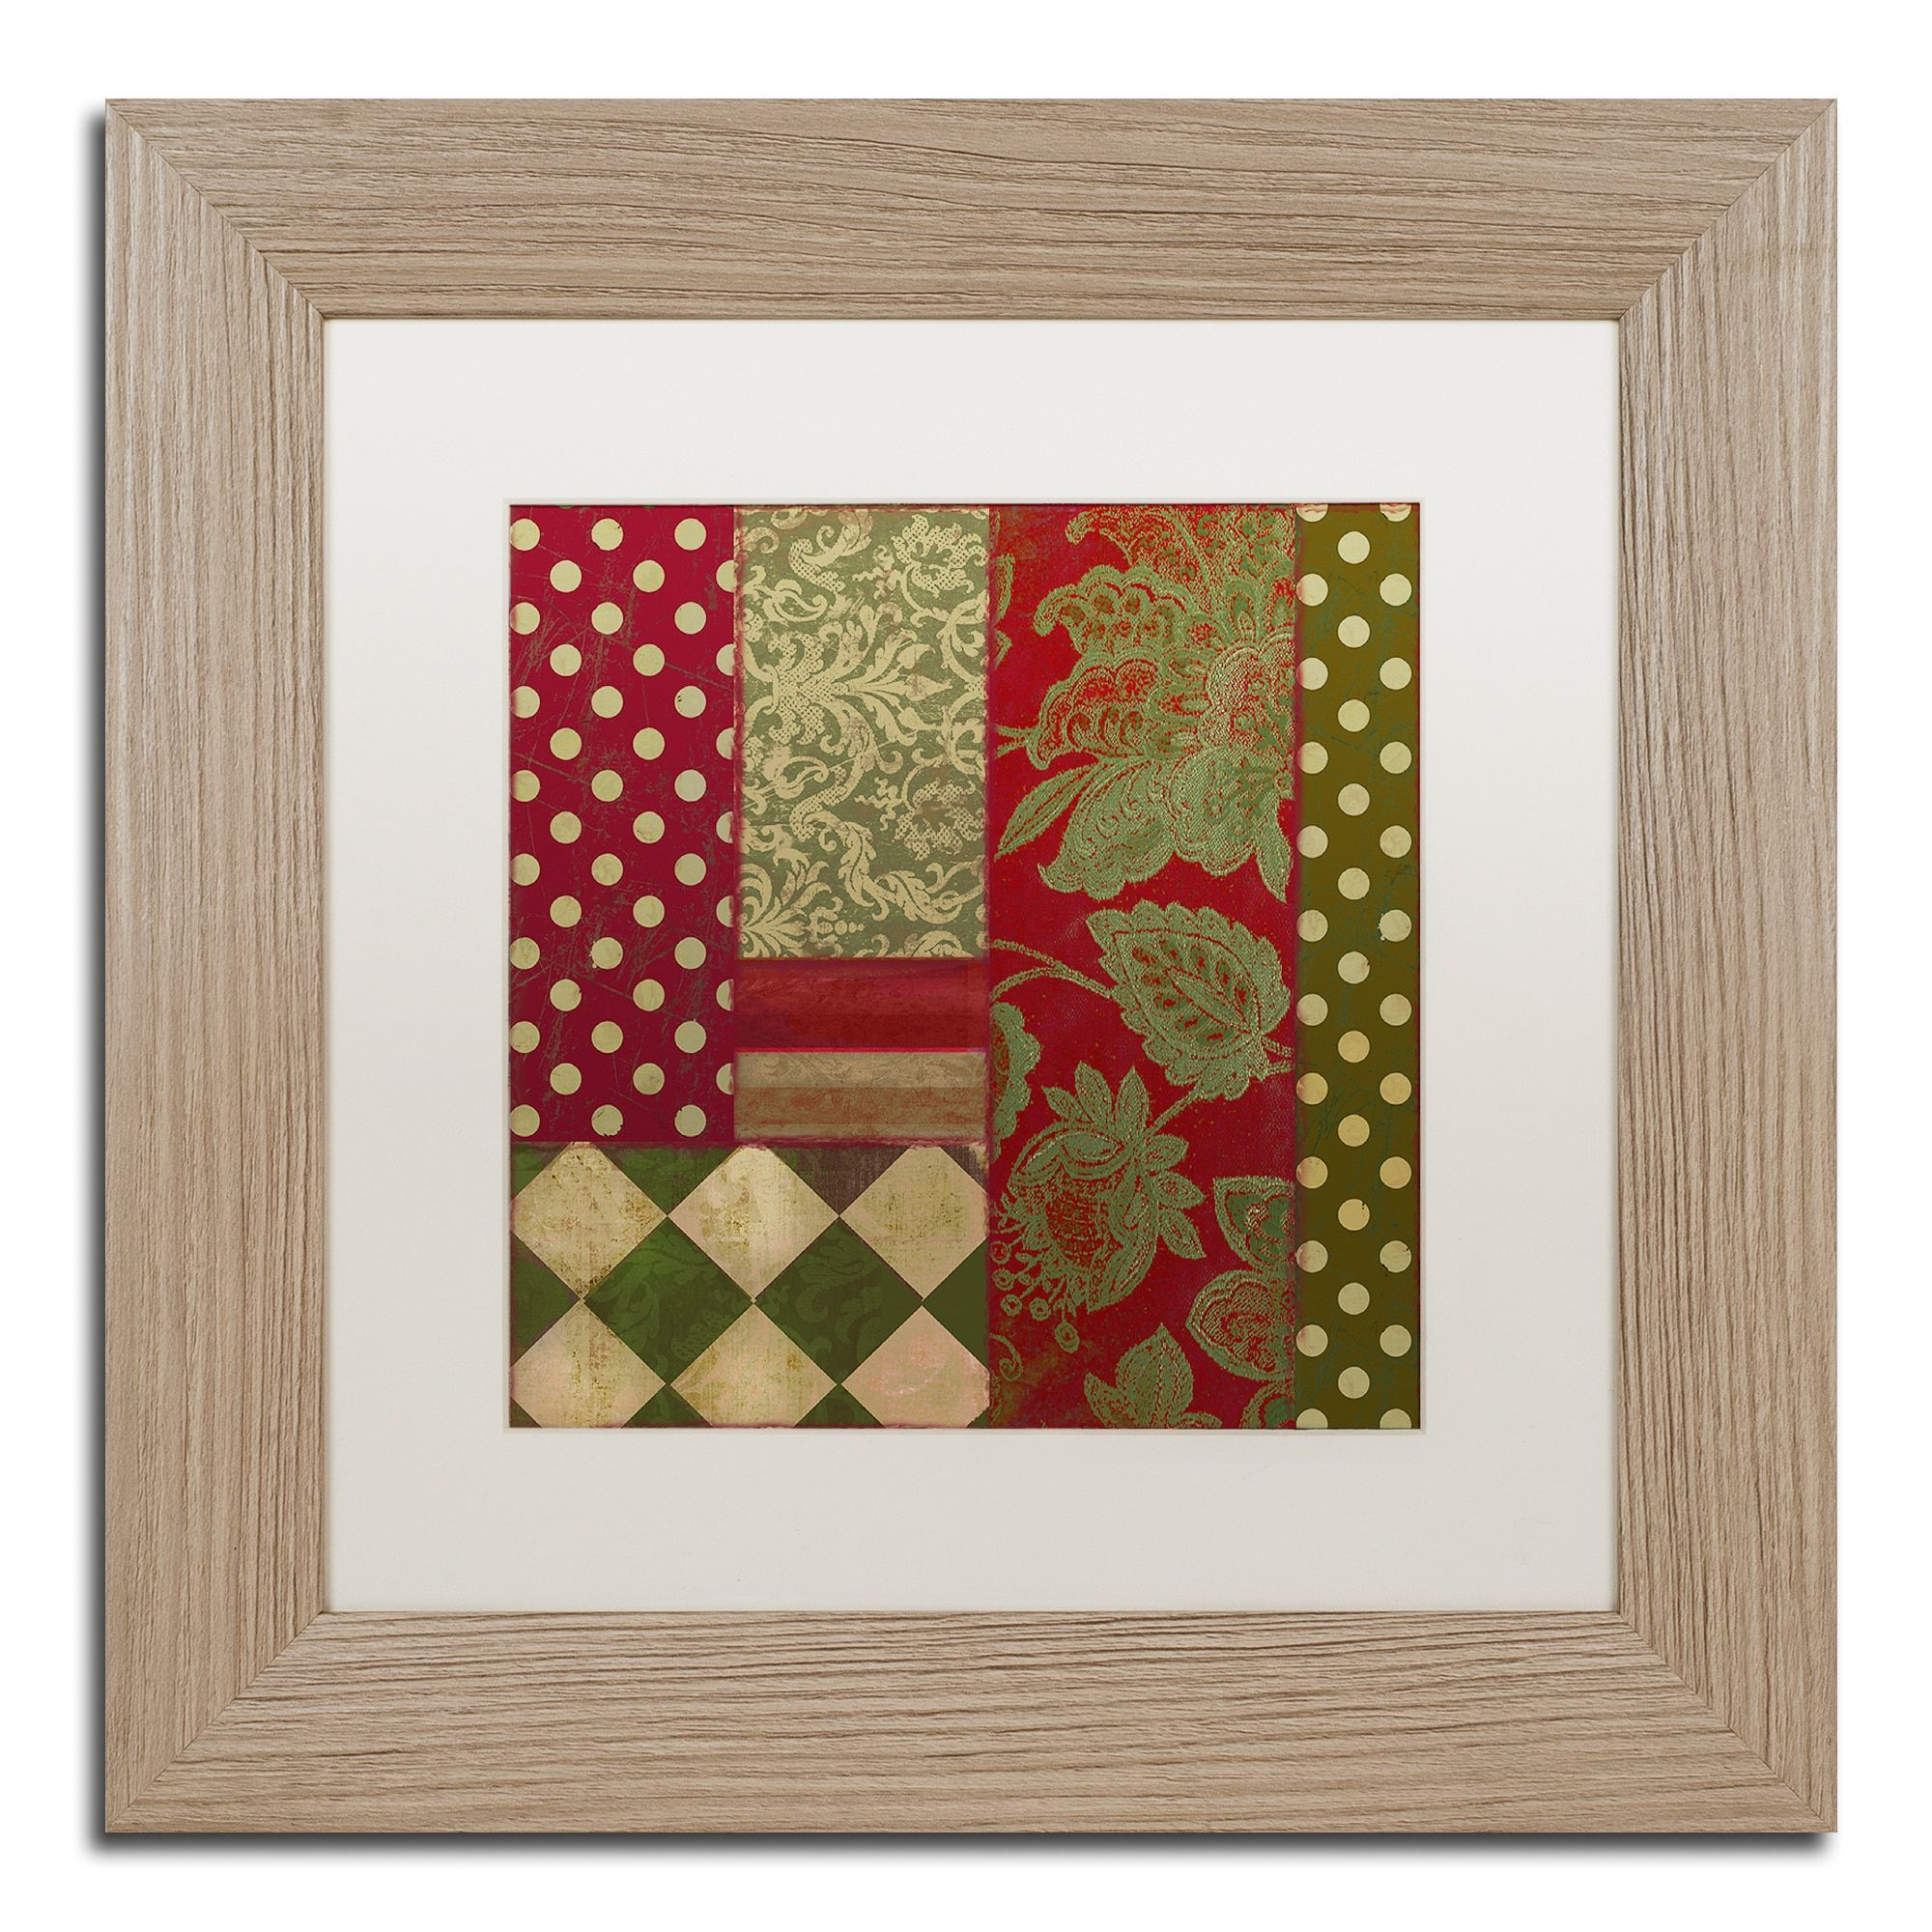 Color Bakery 'Merry Christmas Patchwork Iii' Matted Framed Art